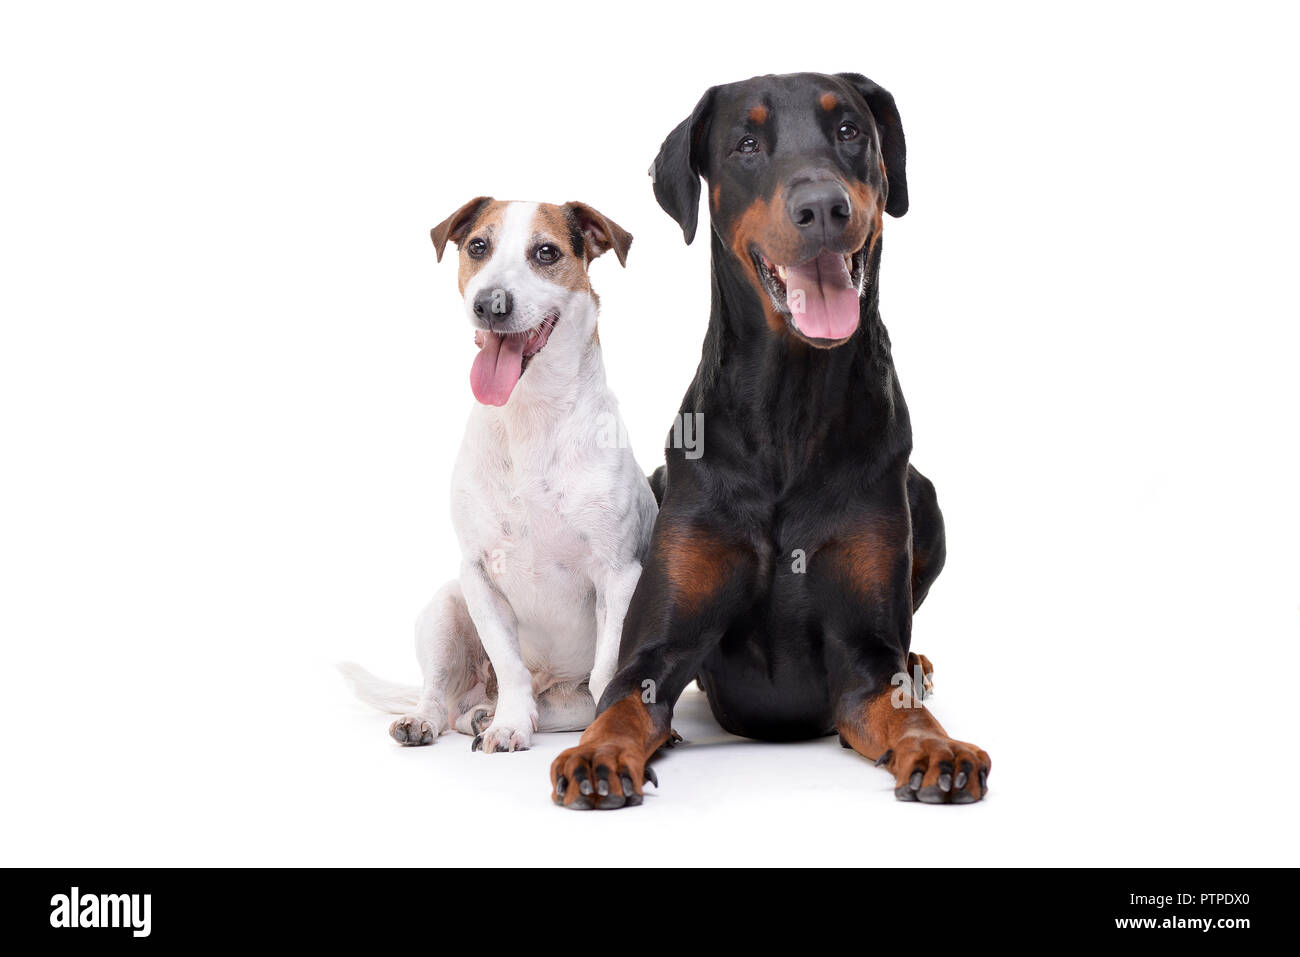 Studio shot of an adorable Jack Russell Terrier and a Dobermann sitting on white background. - Stock Image